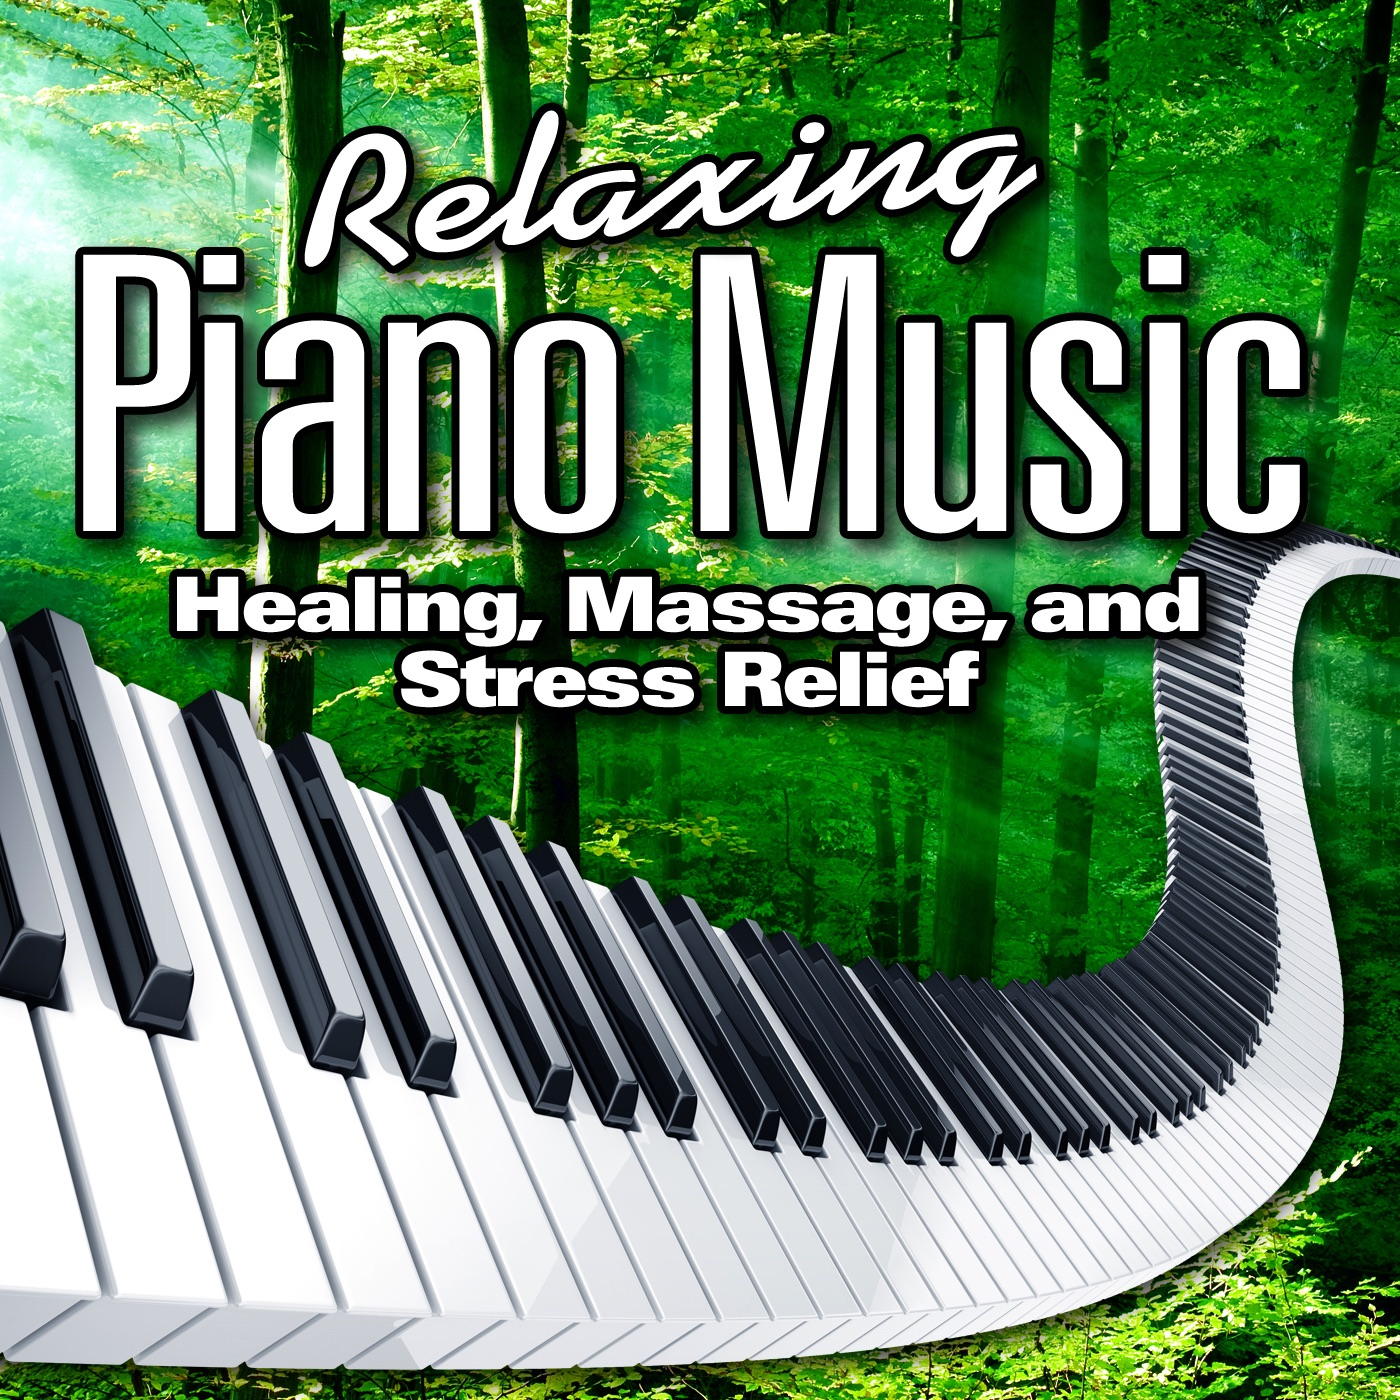 Relaxing Piano Music for Healing, Massage and Stress Relief